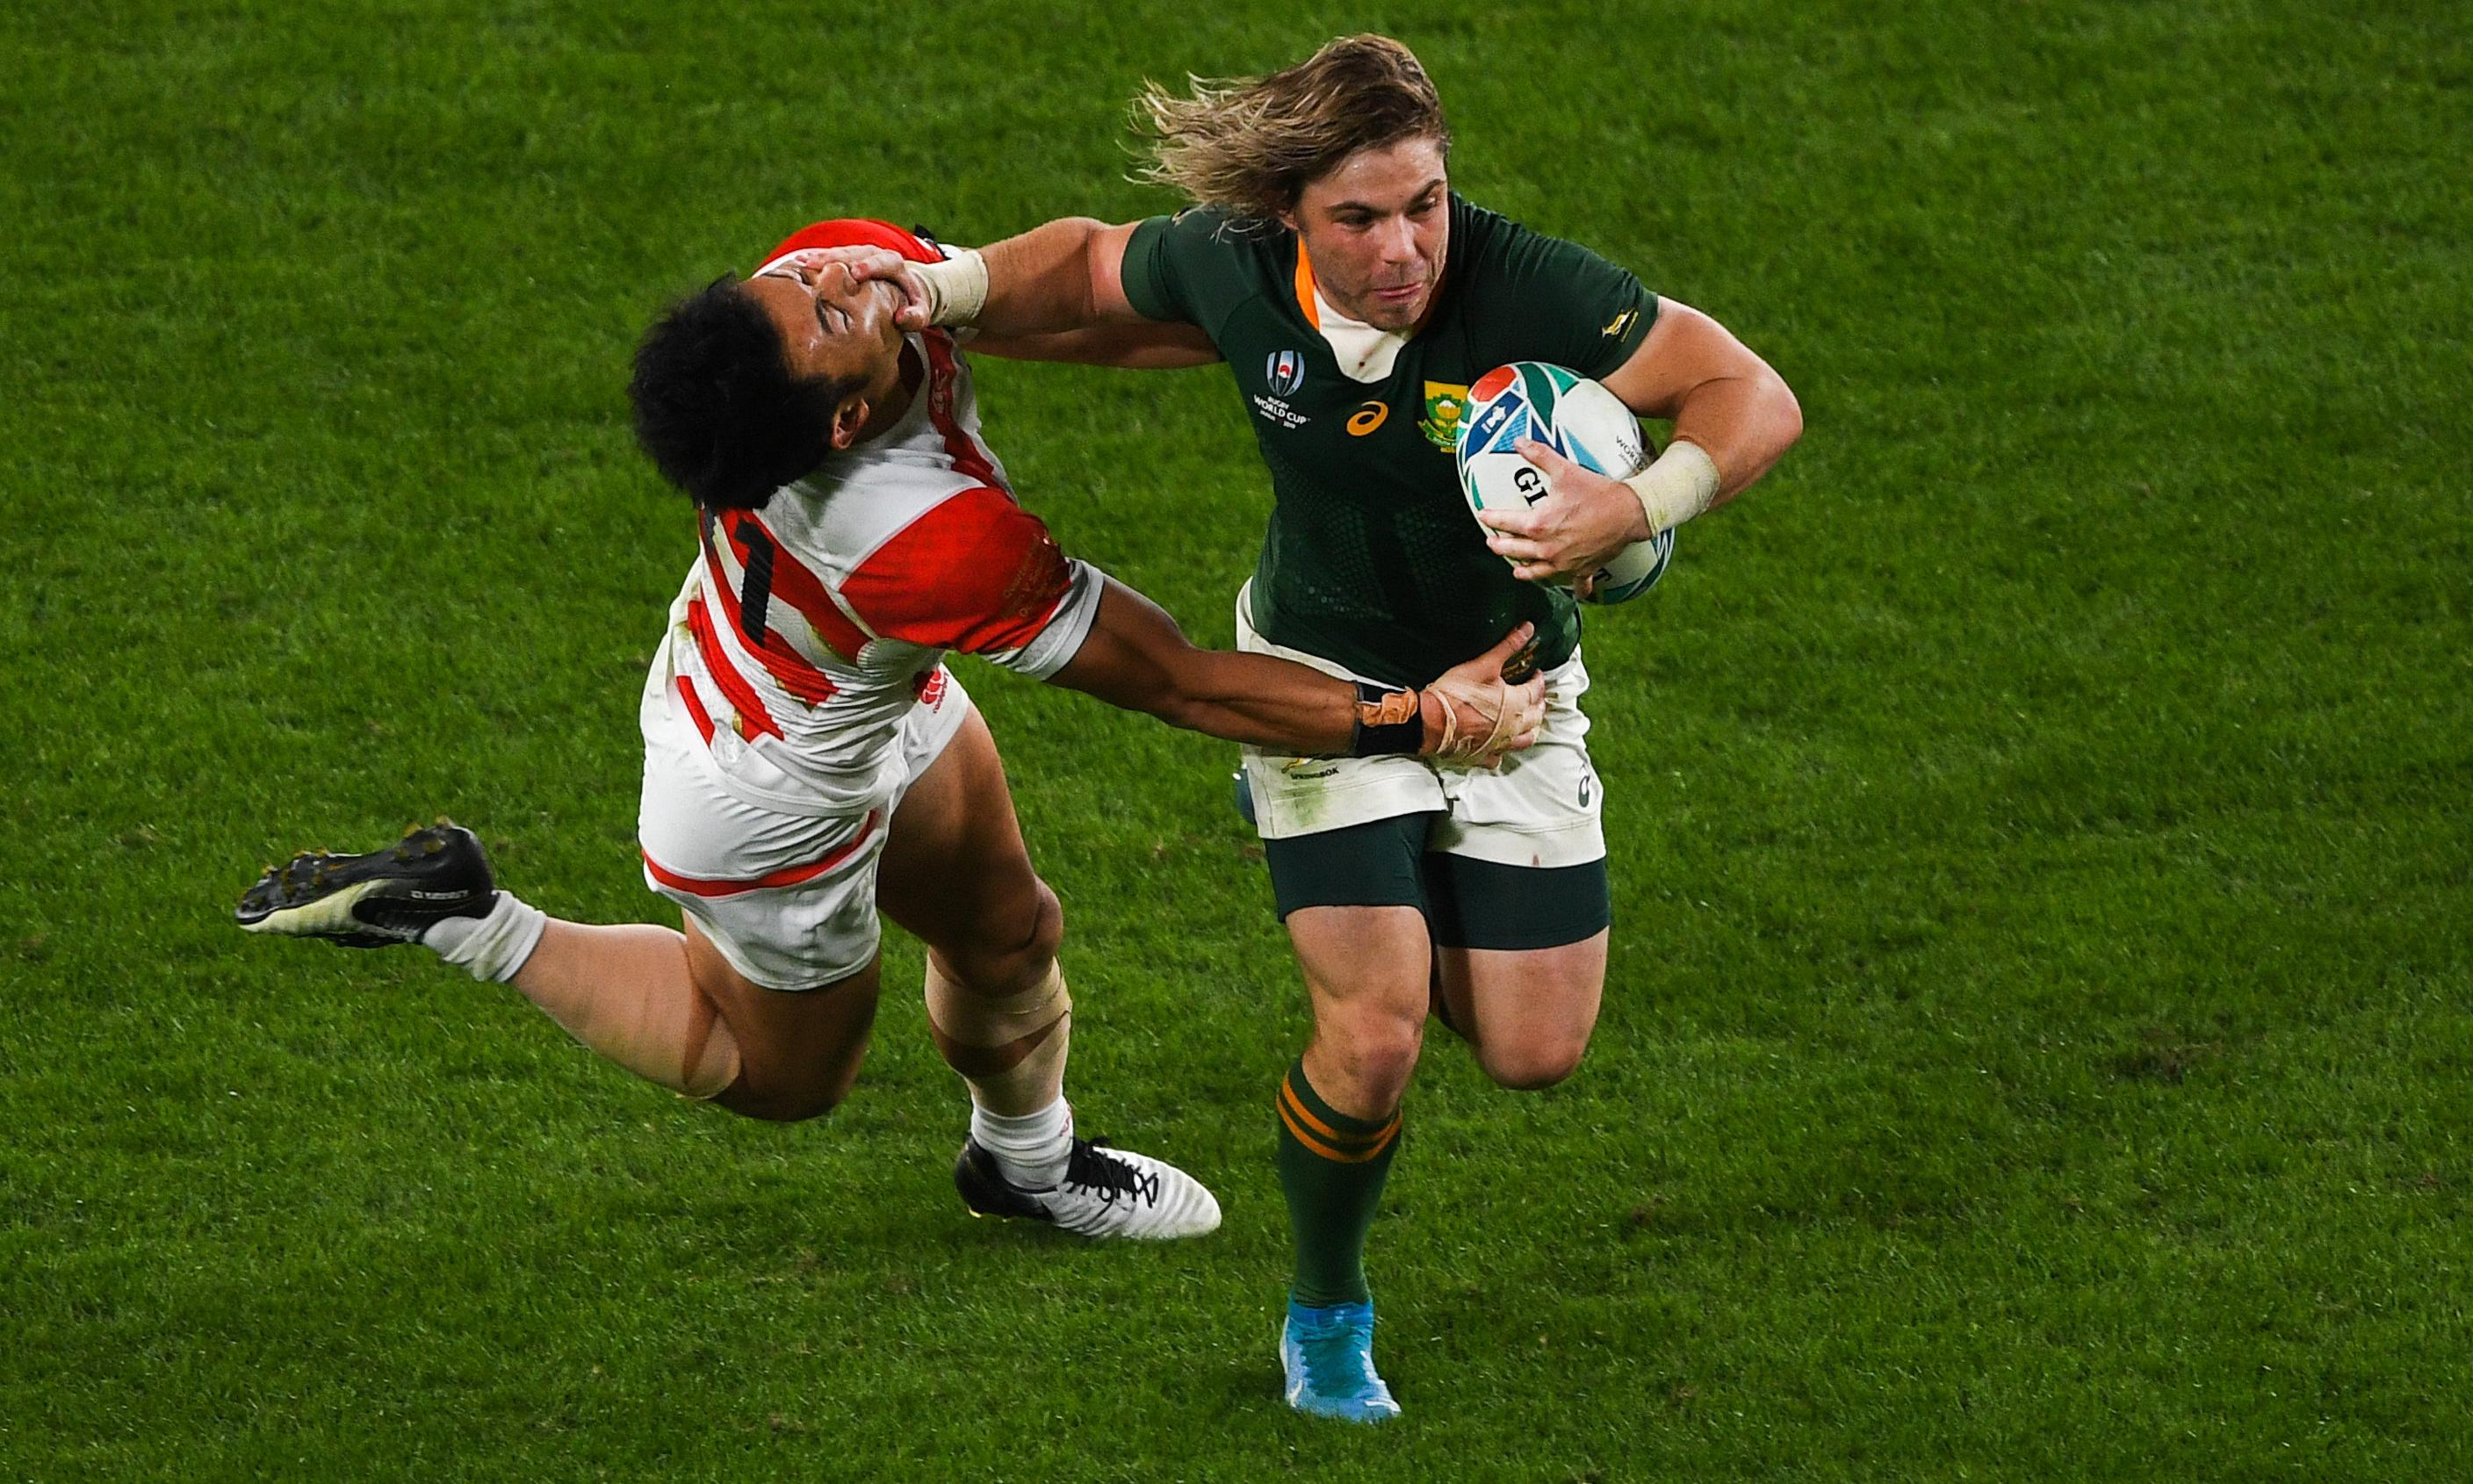 Faf de Klerk: 'I guess moving to England was a blessing in disguise'